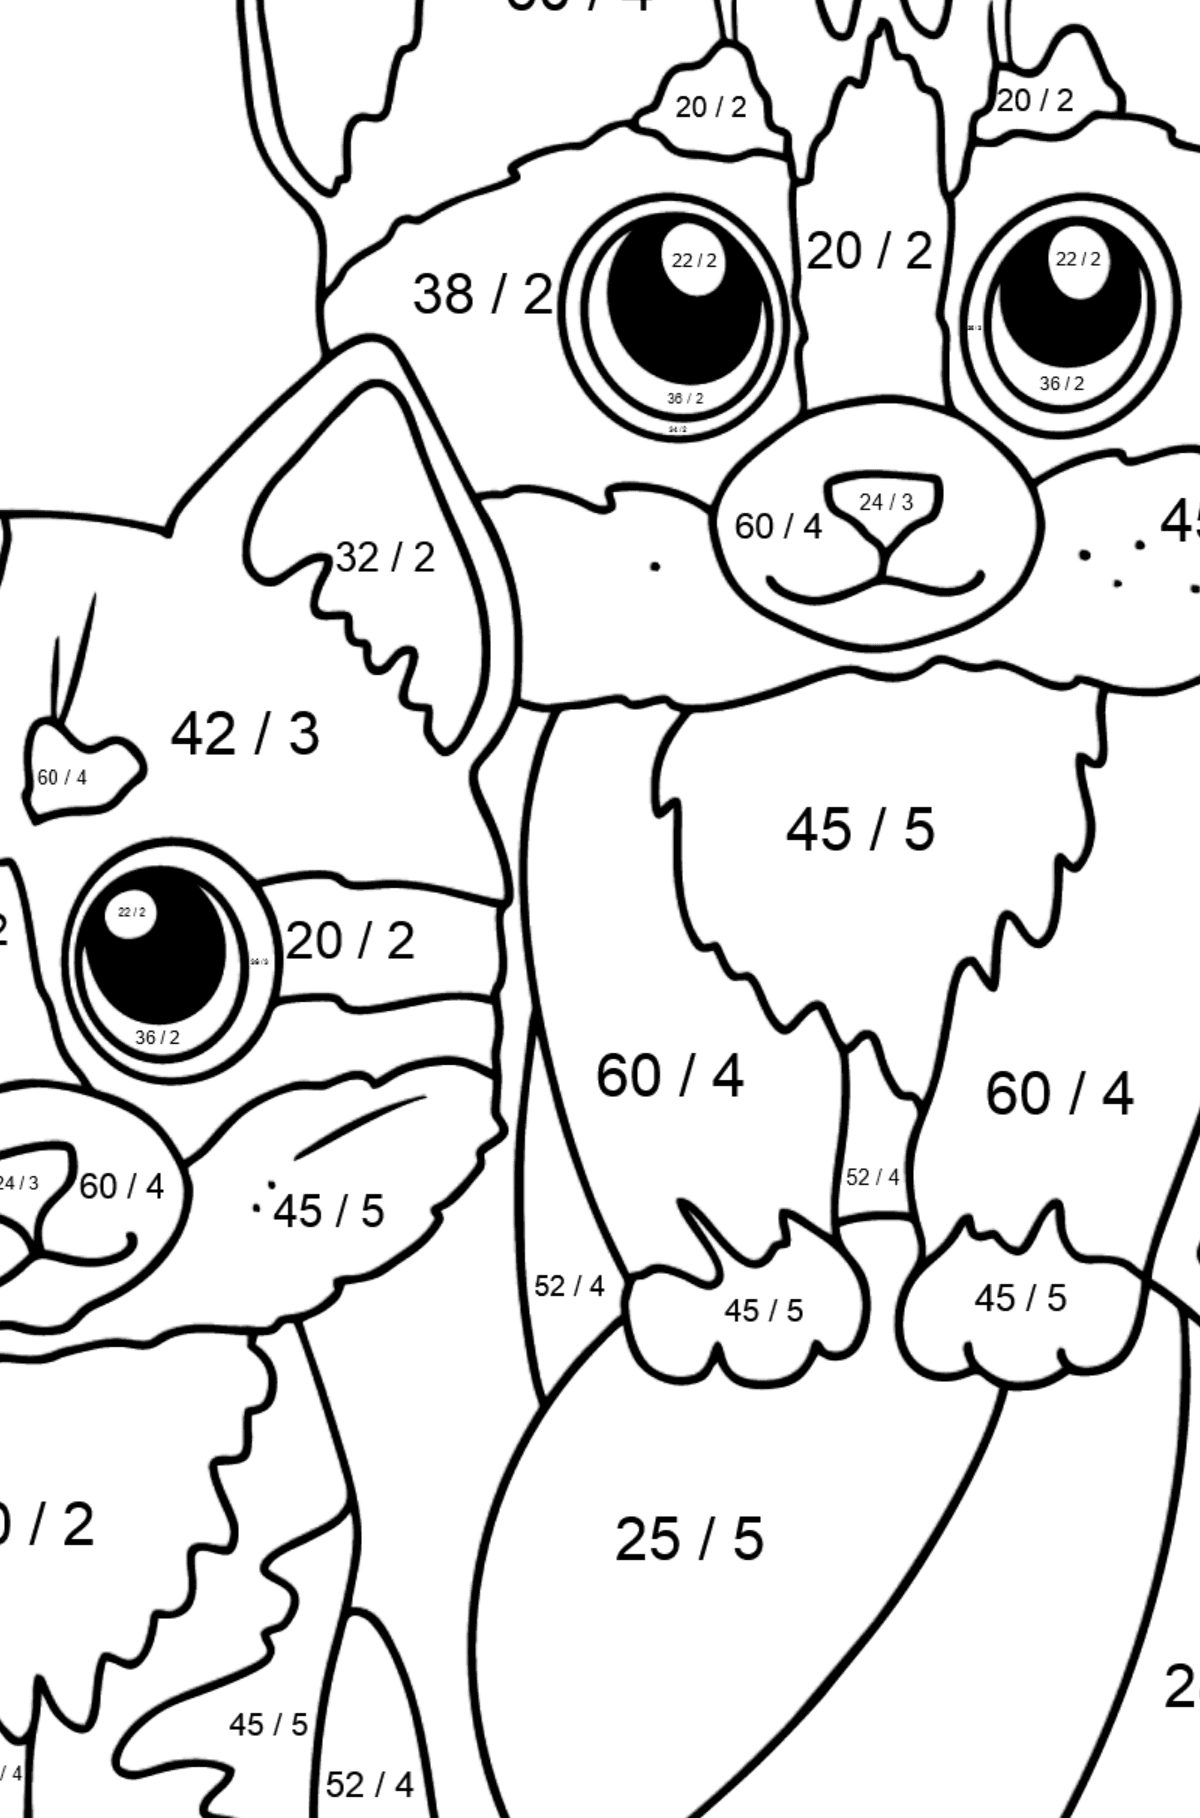 Coloring Page - Two Kittens with a Ball - Math Coloring - Division for Kids